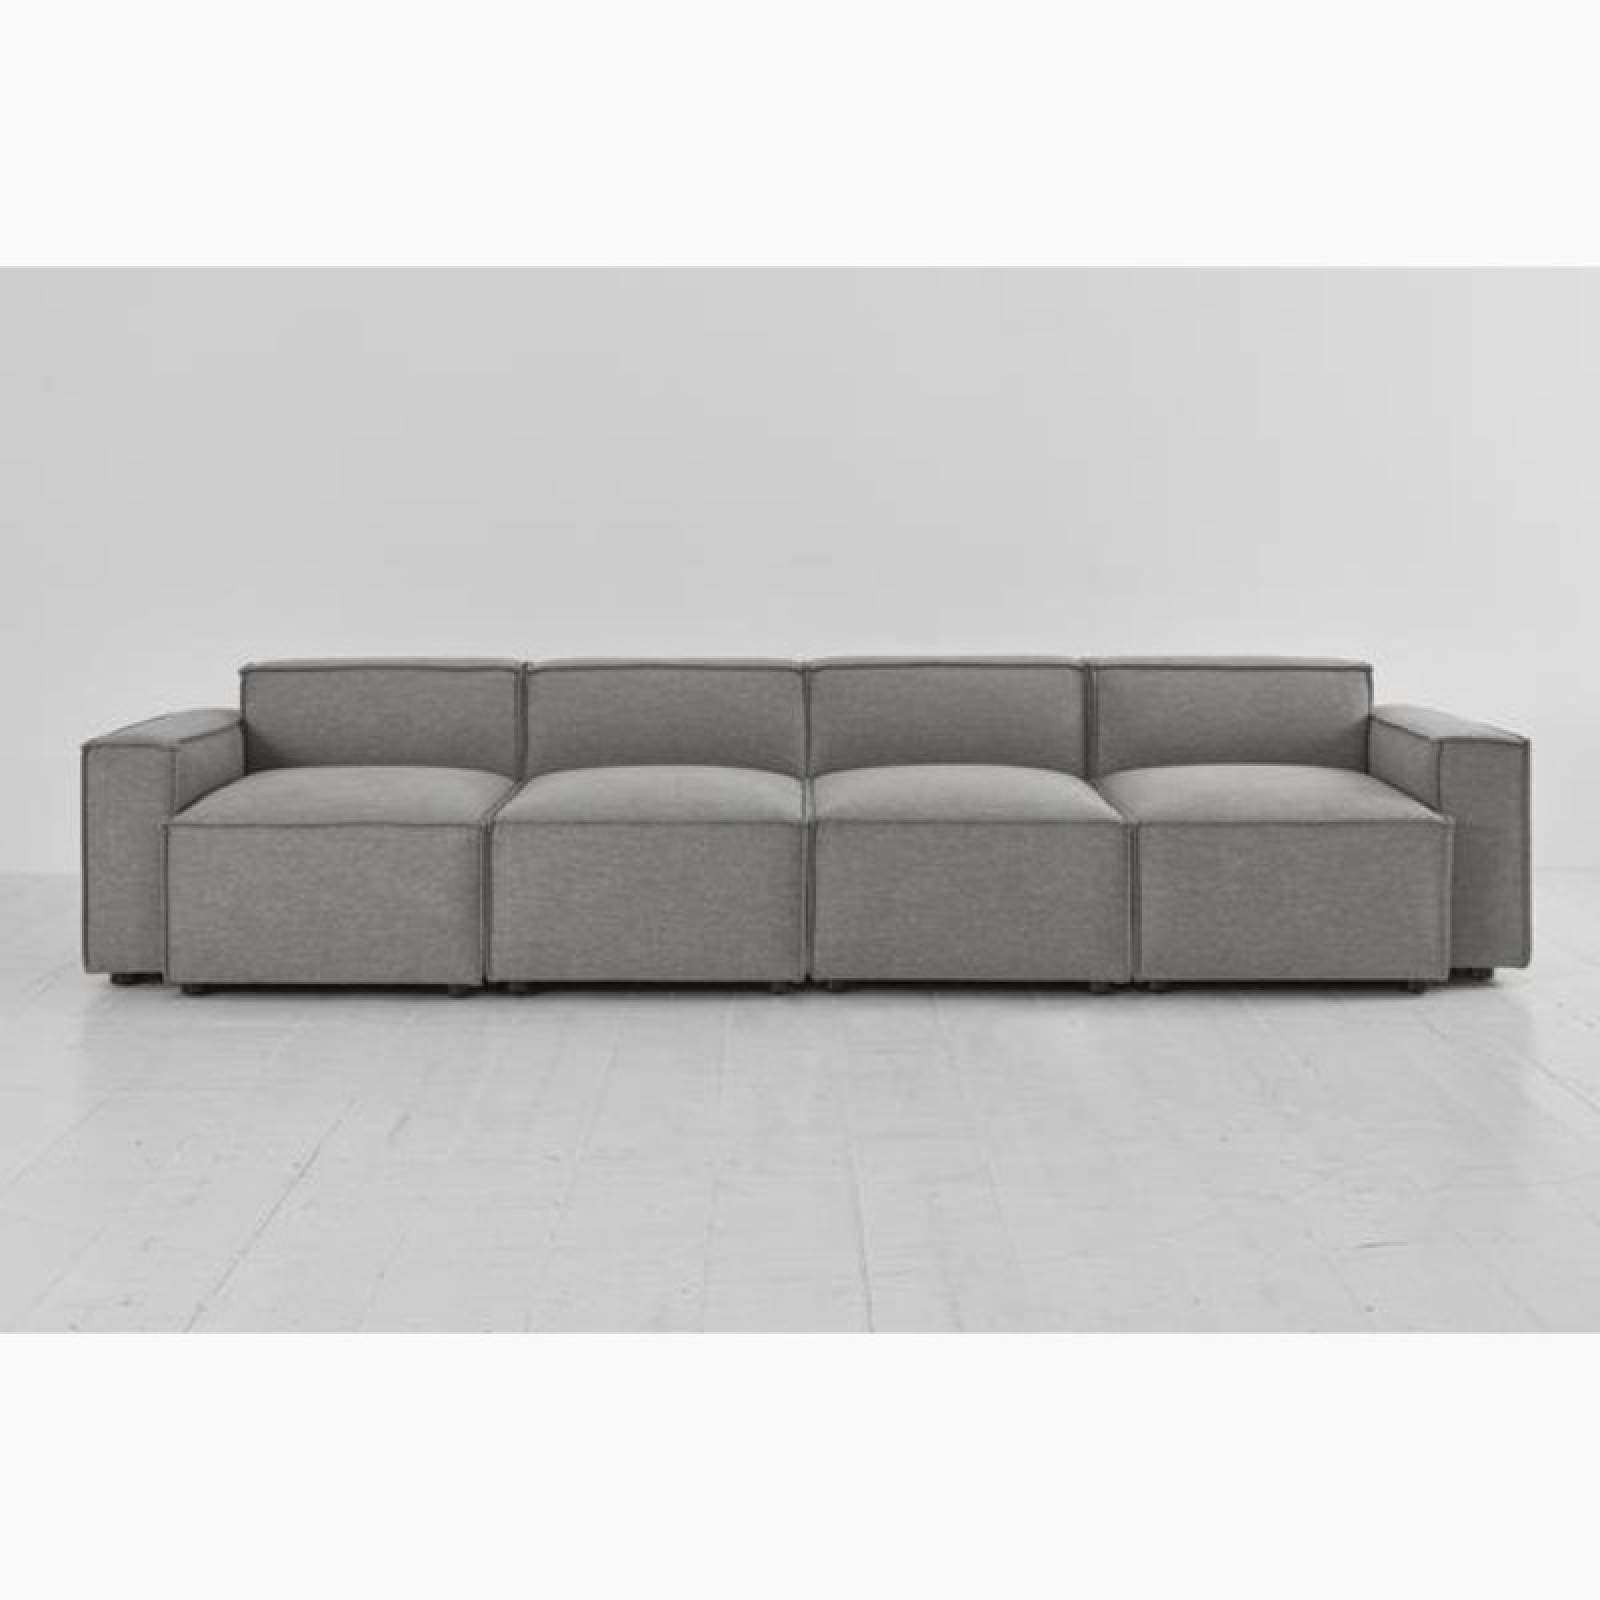 Swyft Model 03 - 4 Seater Sofa - Linen Shadow thumbnails